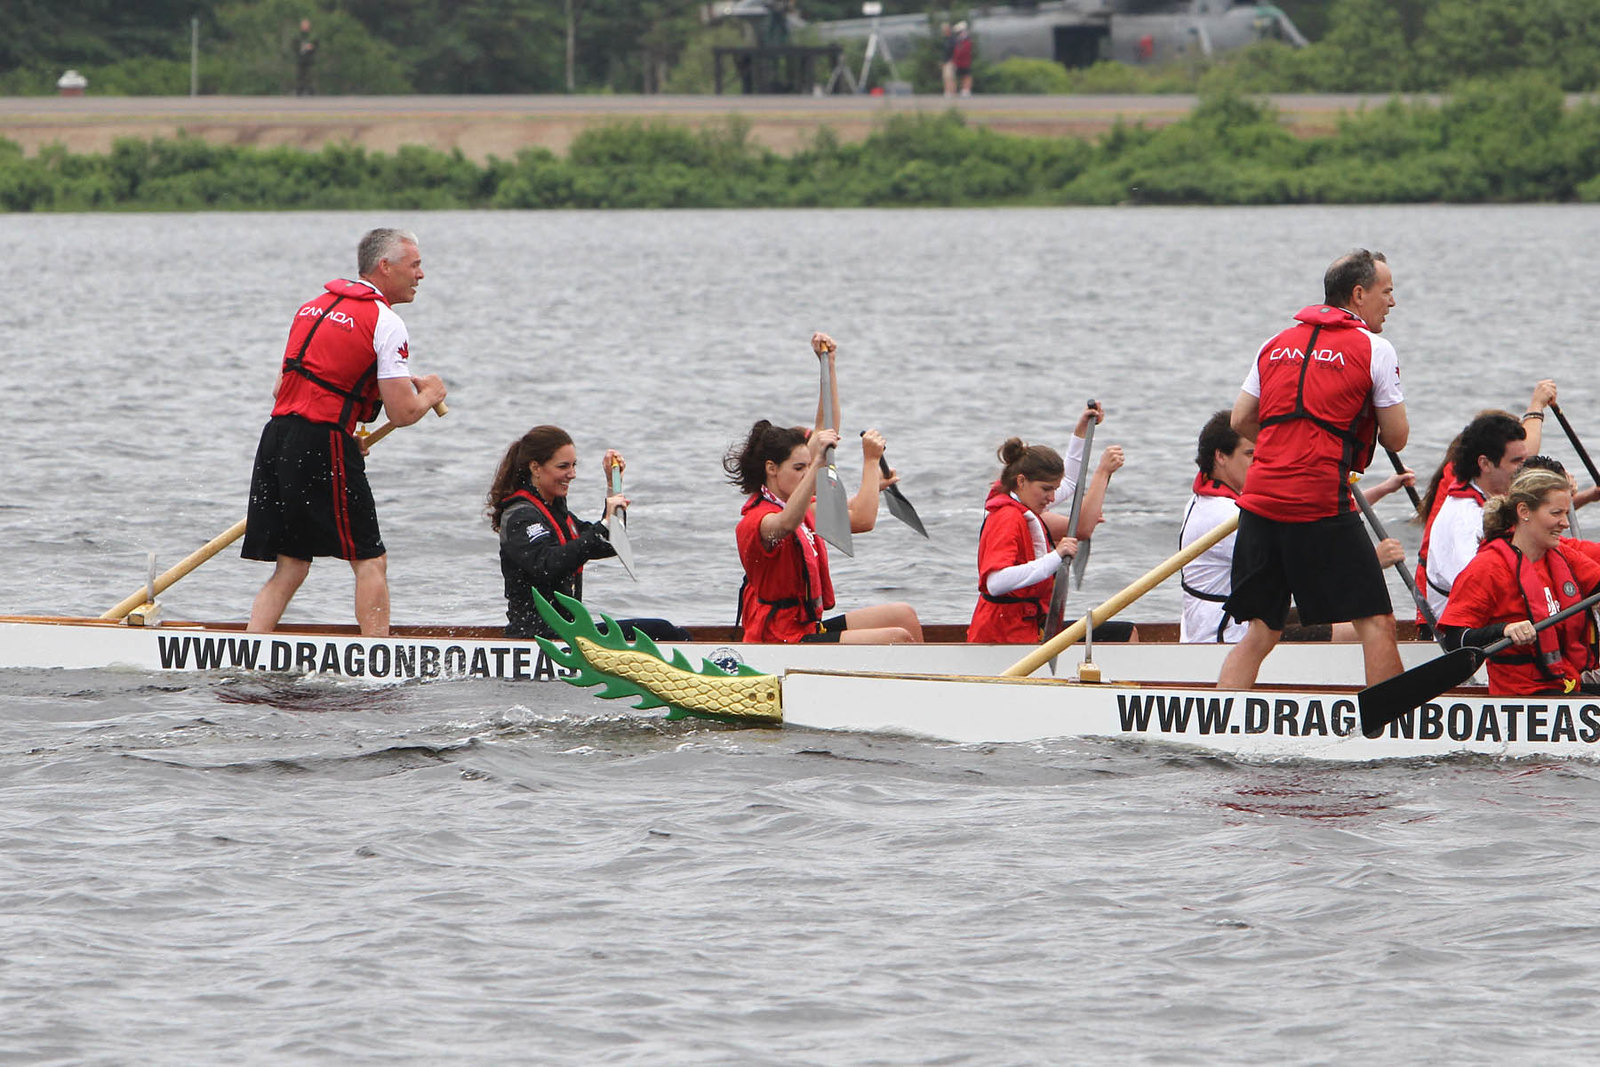 The Duke and Duchess of Cambridge participated in Dragon boat race during Canada tour 2011